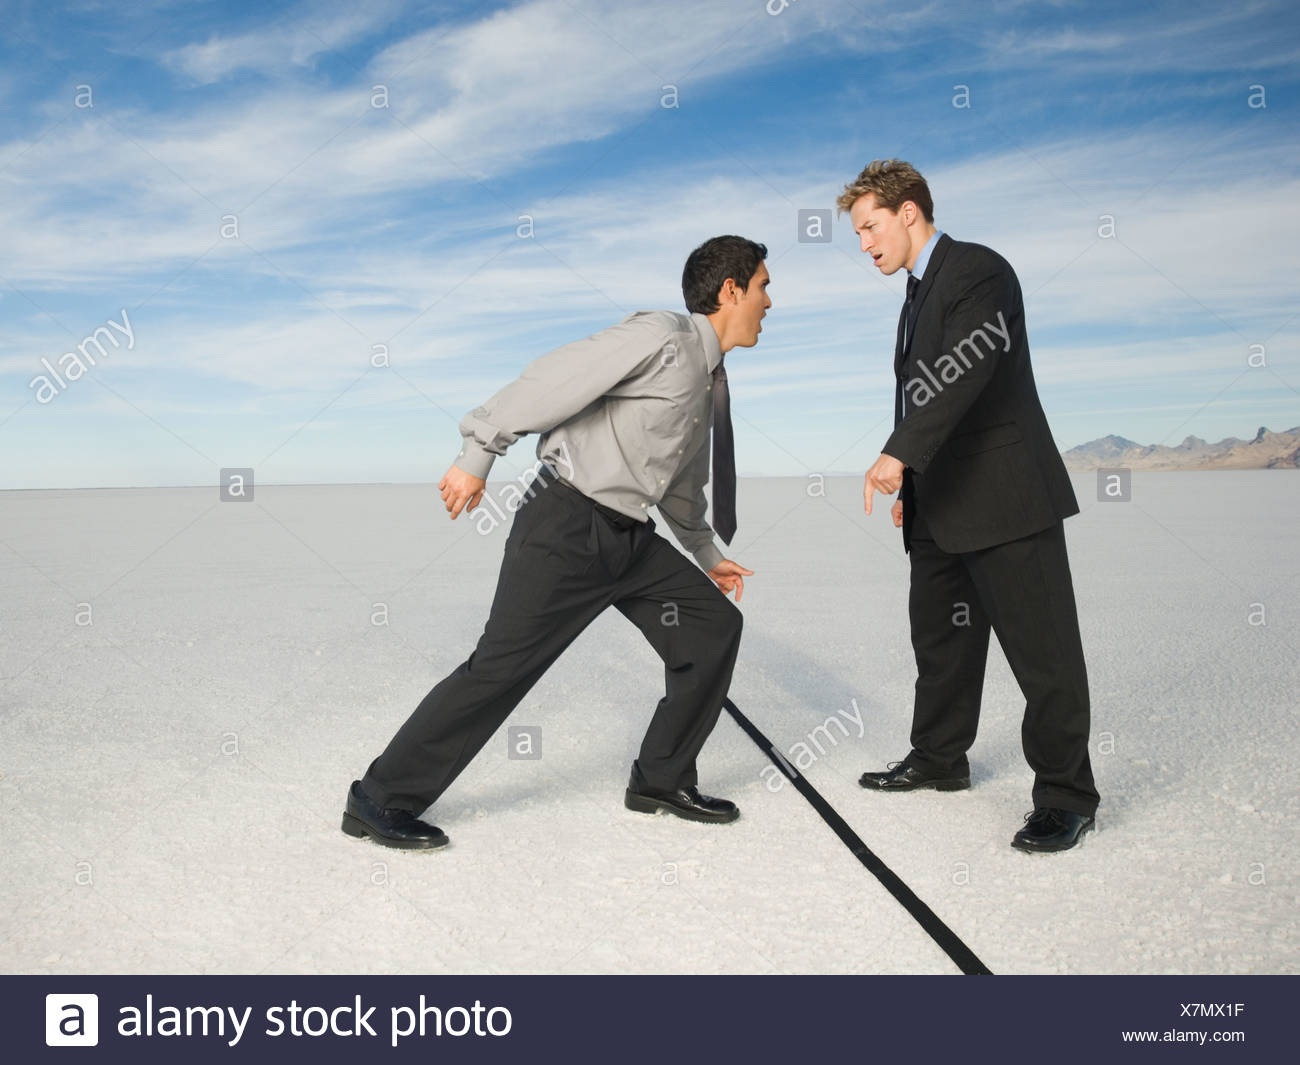 Businessmen on opposite sides of line, Salt Flats, Utah, United States - Stock Image